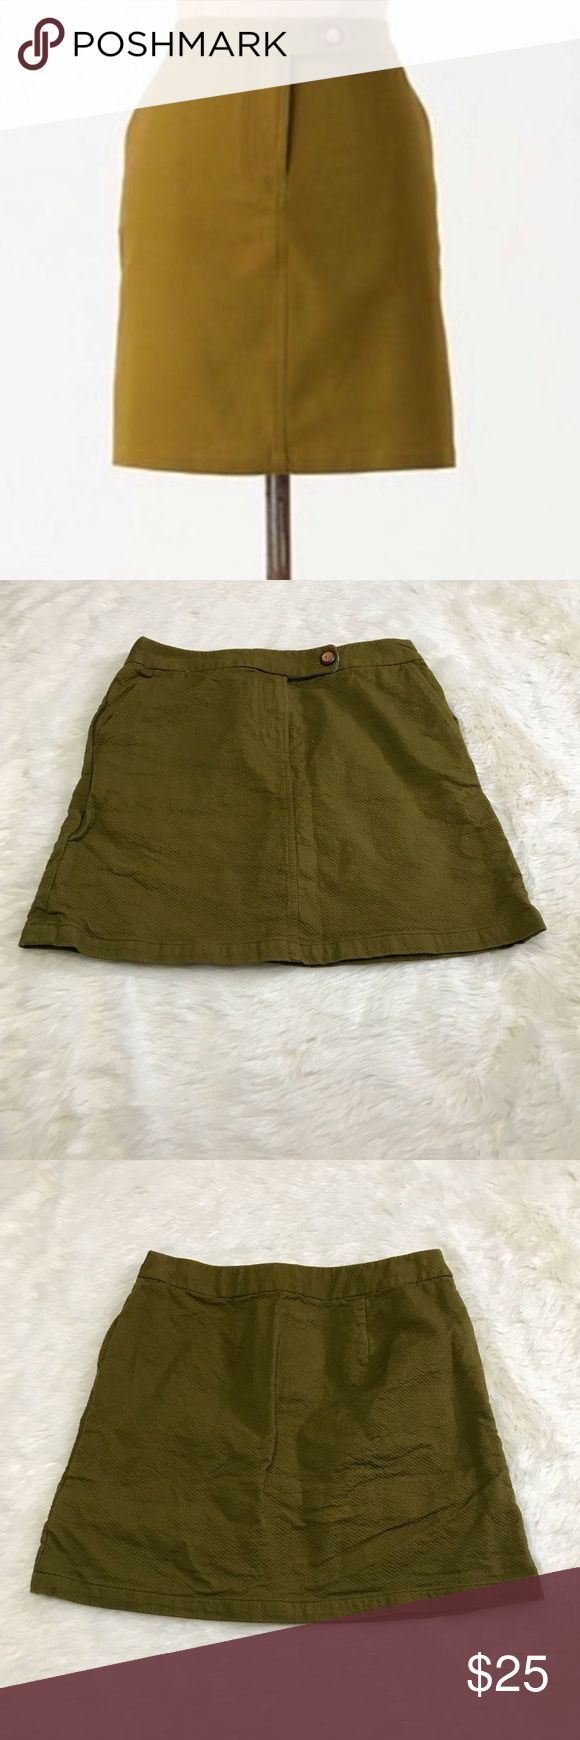 """Anthropologie Vanessa Virginia Green Skirt This forest green pickstiched mini skirt is adorable. It is a size 4 and is 100% cotton. Excellent used condition. It has a tropical print accent strip inside and for the pocket linings. Zipper and button at waist.   Measurements (from flat lay) Length: 15 1/2"""" Waist: 13 1/2""""  ❤️ Bundle and Save on Shipping! ❤️ I Love Offers! Anthropologie Skirts"""